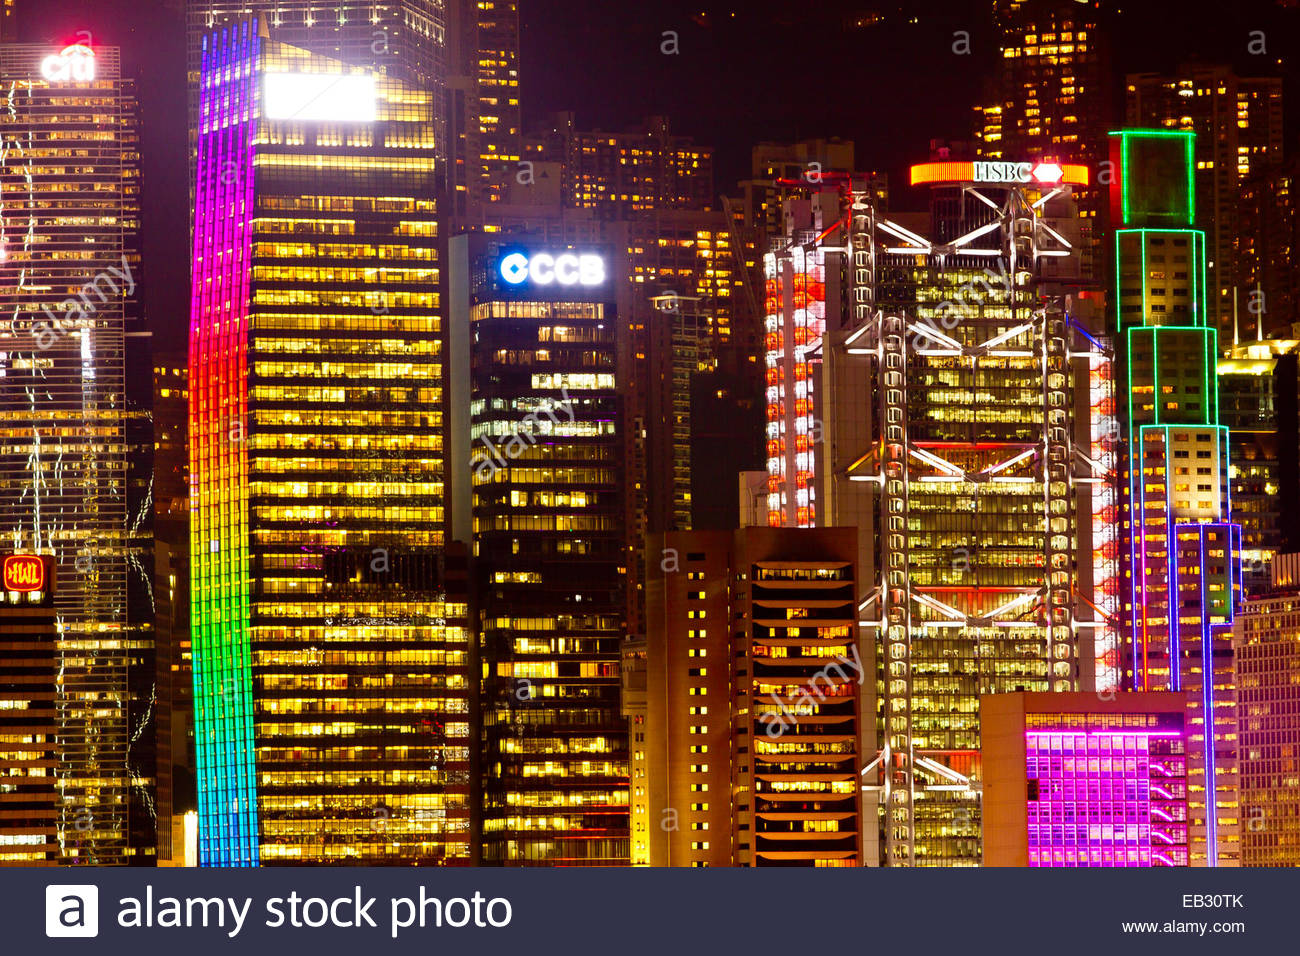 The colorful Hong Kong skyline completely lit up at night. - Stock Image